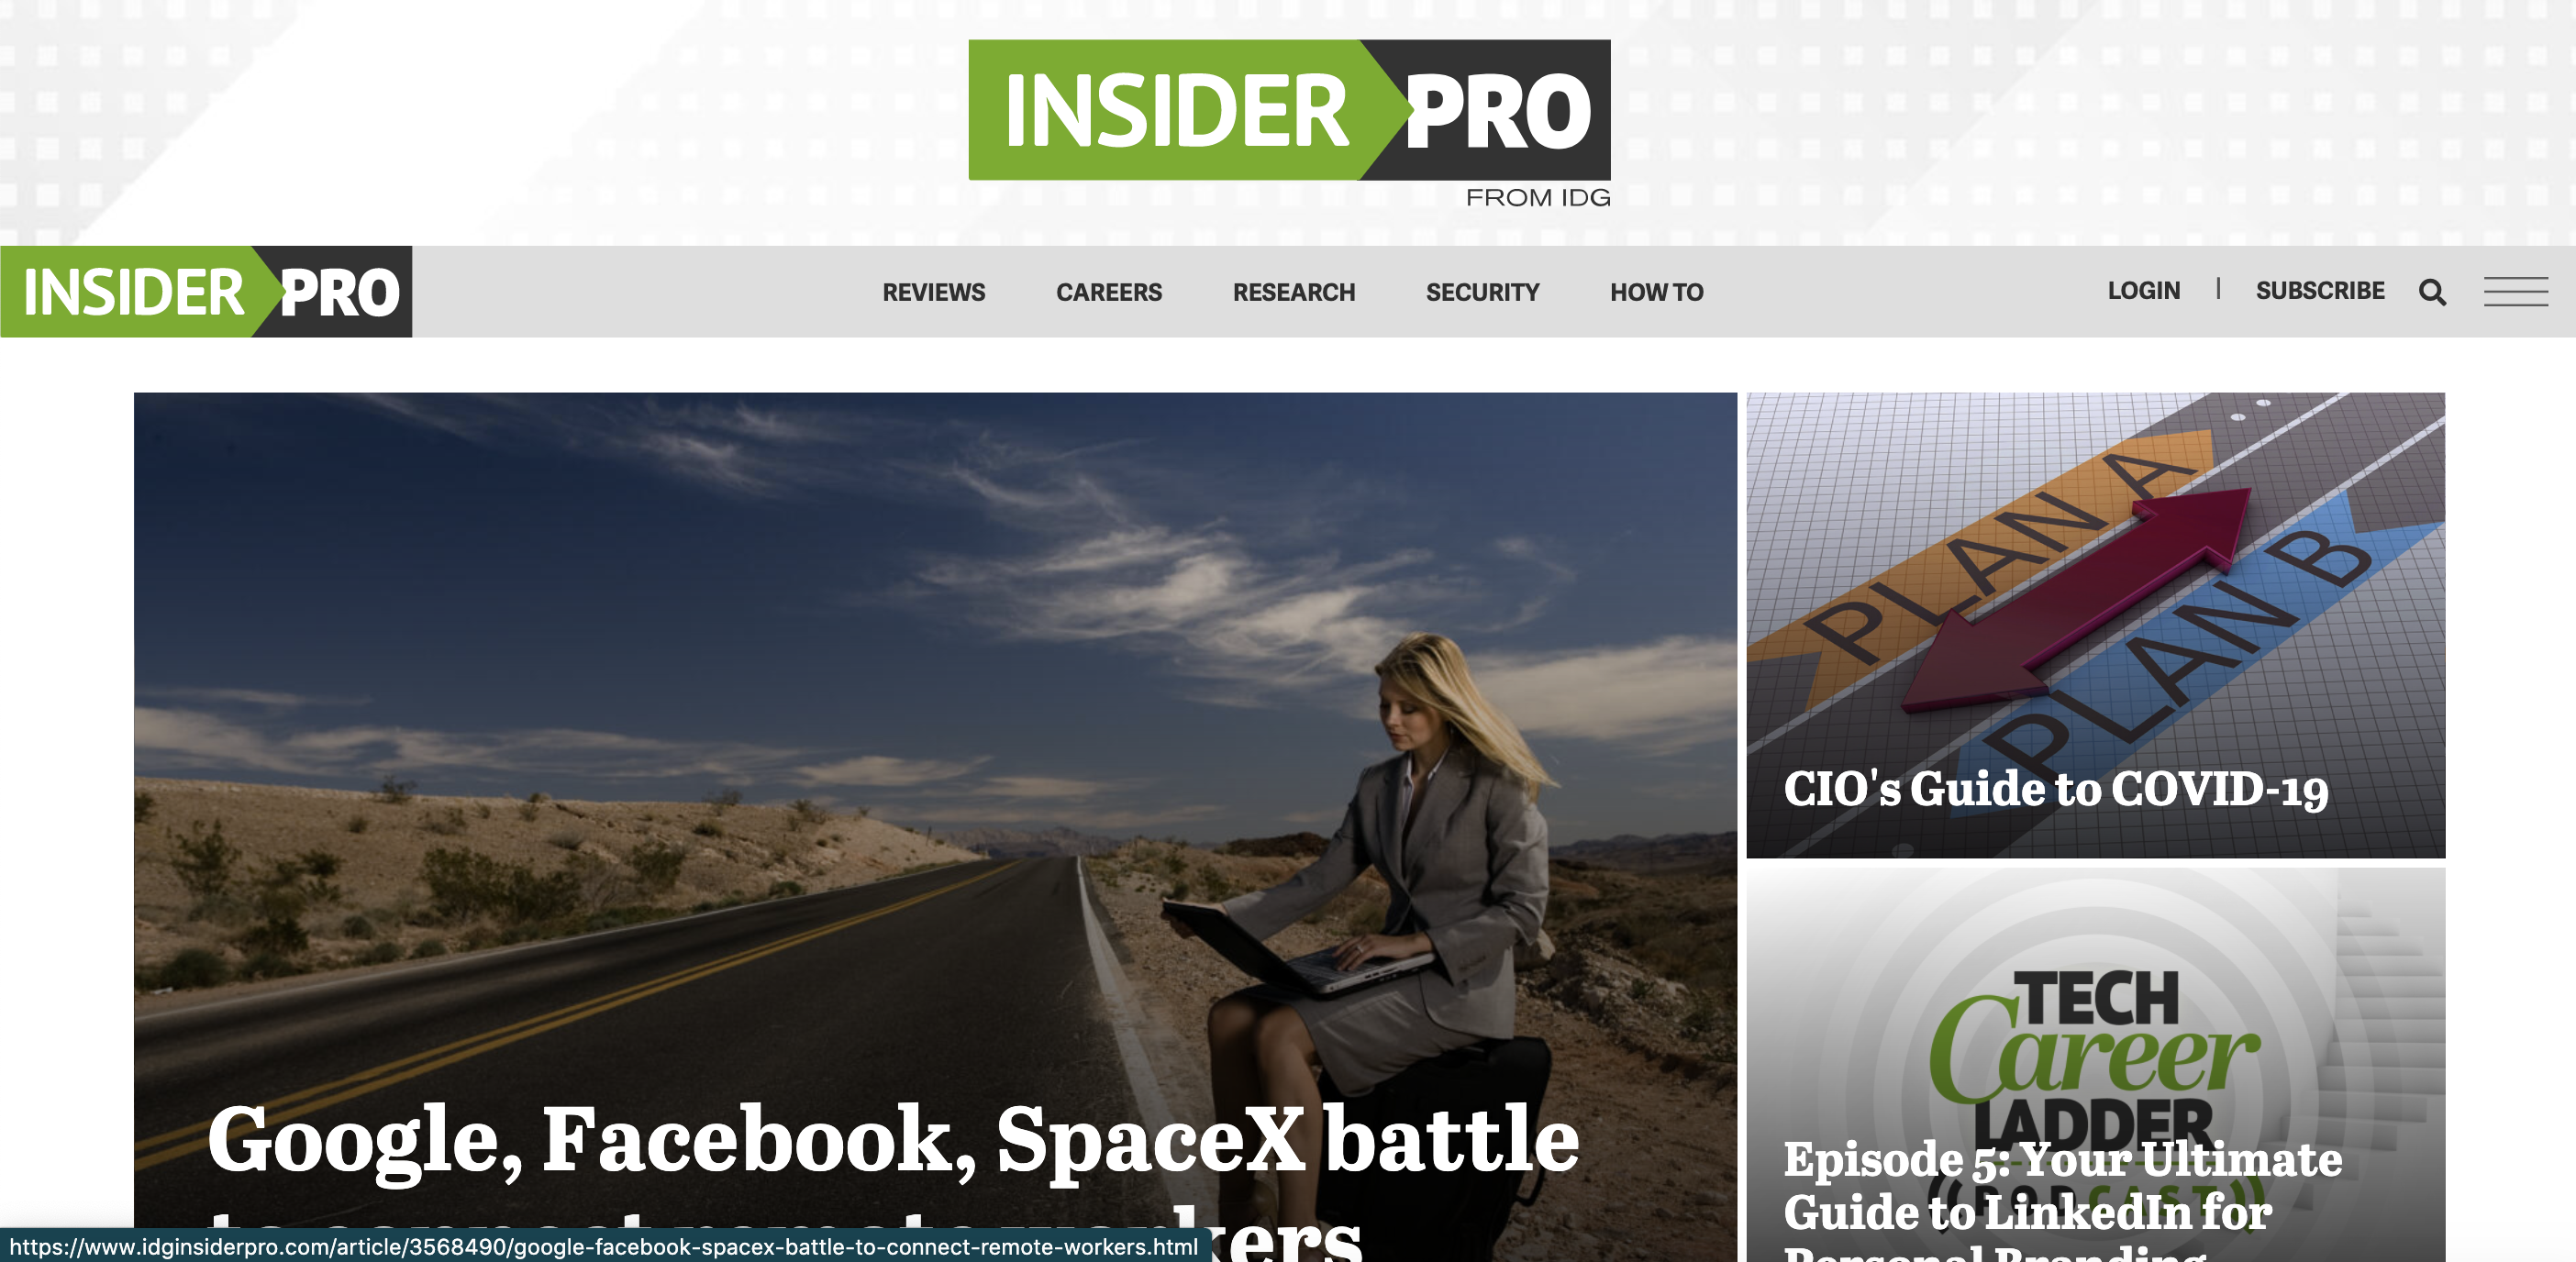 Screenshot of the top of IDG's InsiderPro homepage